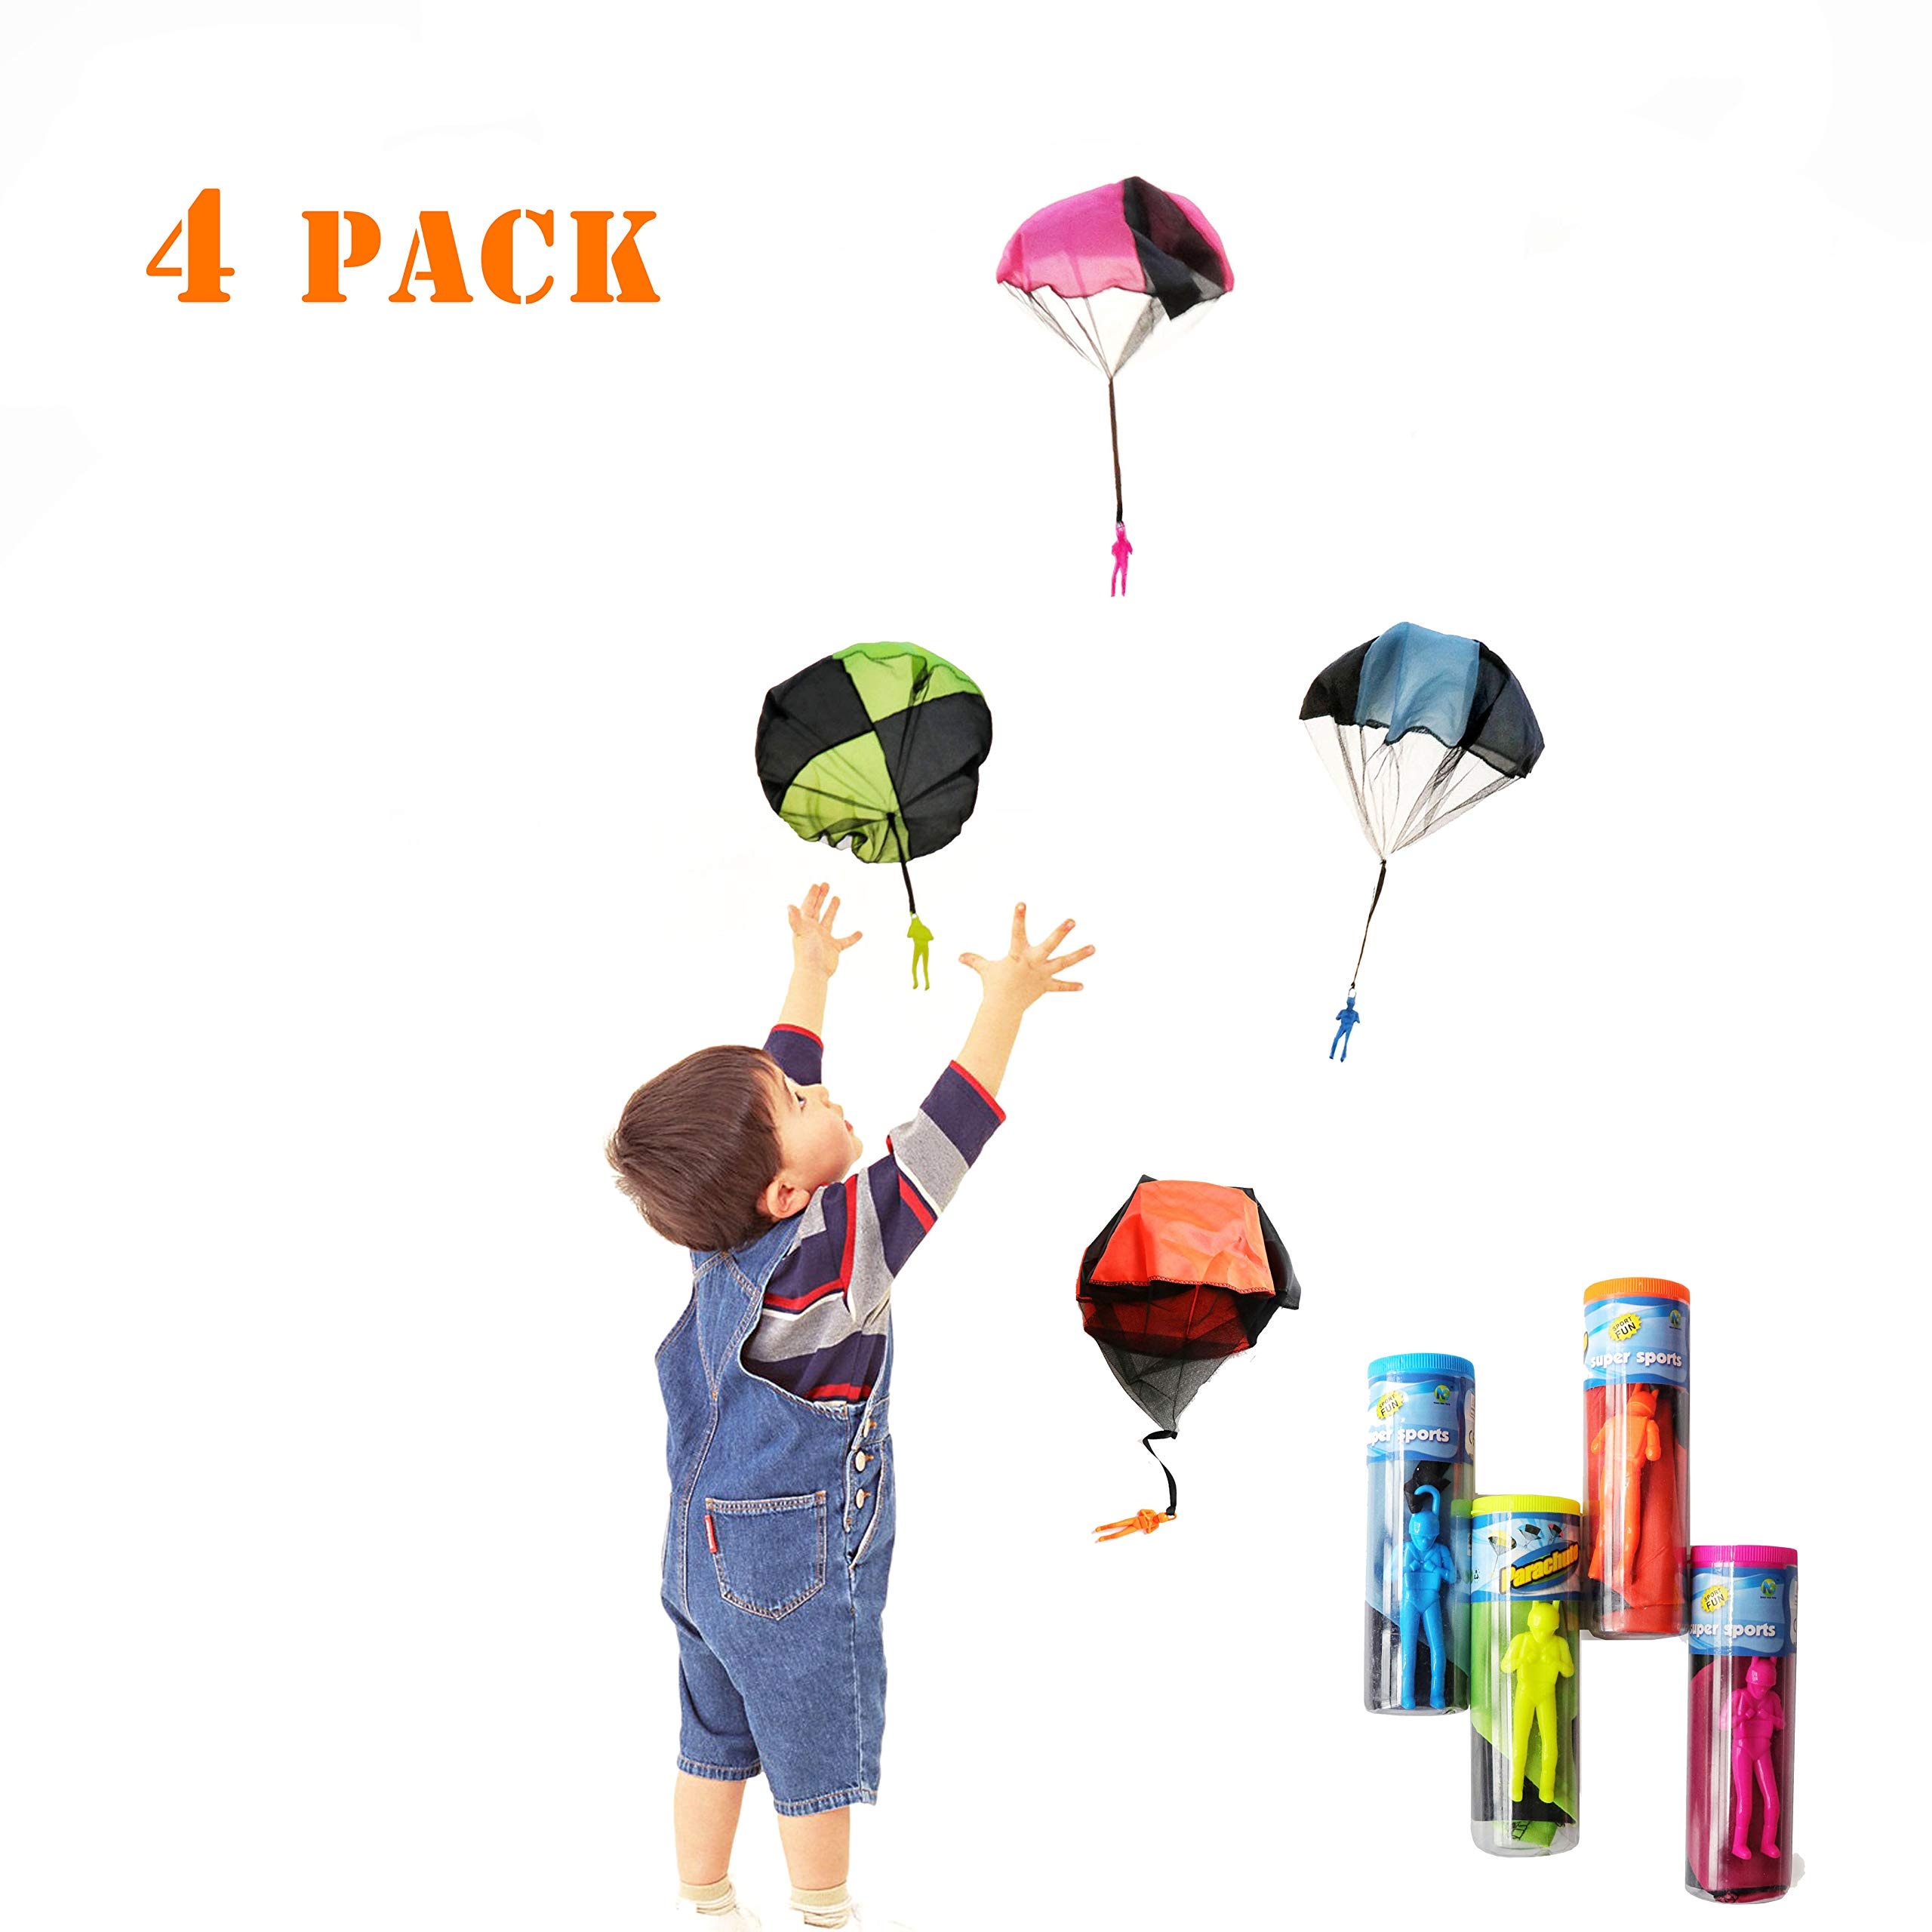 kizh Tangle Free Throwing Figures Hand Throw Soliders Parachute Men Children's Flying Toys 4 Pack Parachute Square Garden Outdoor Play Game Toy